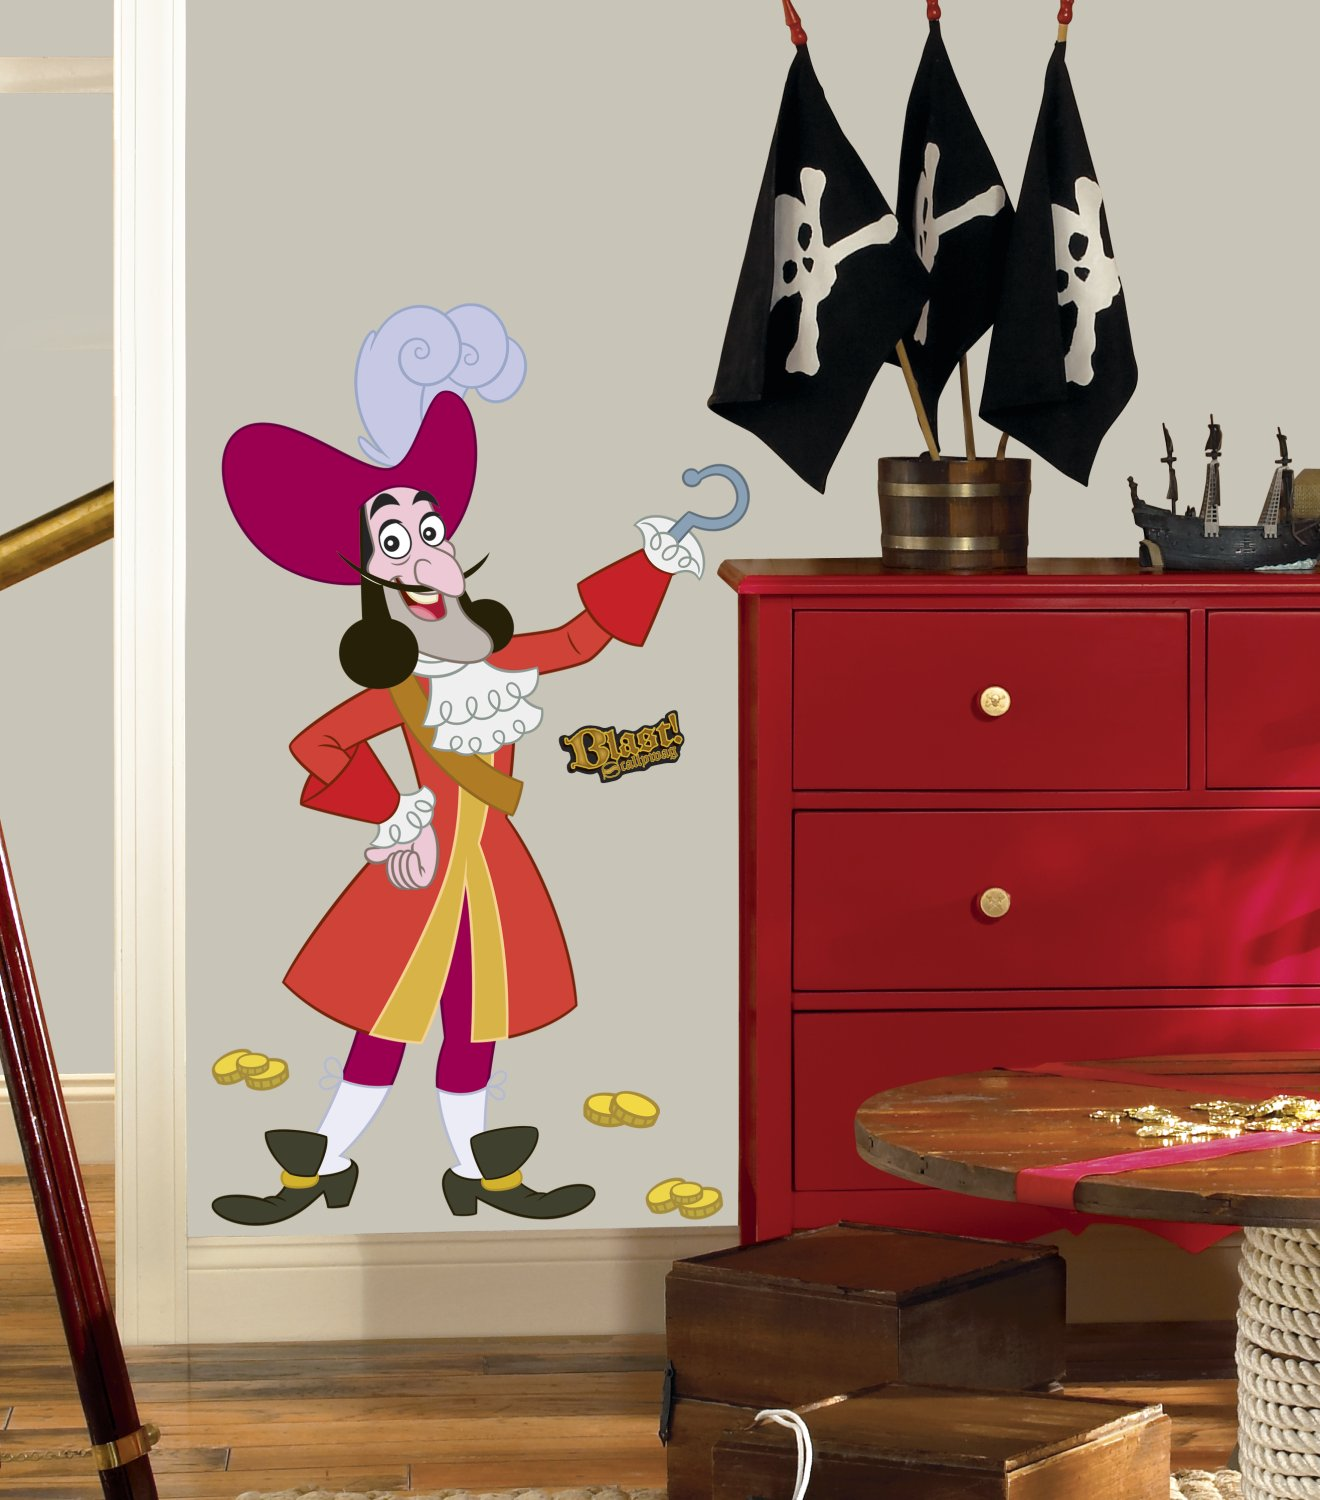 Amazon.com: Roommates Rmk1958Gm Disney Jake And The Neverland Pirates  Captain Hook Peel And Stick Giant Wall Decal: Home Improvement